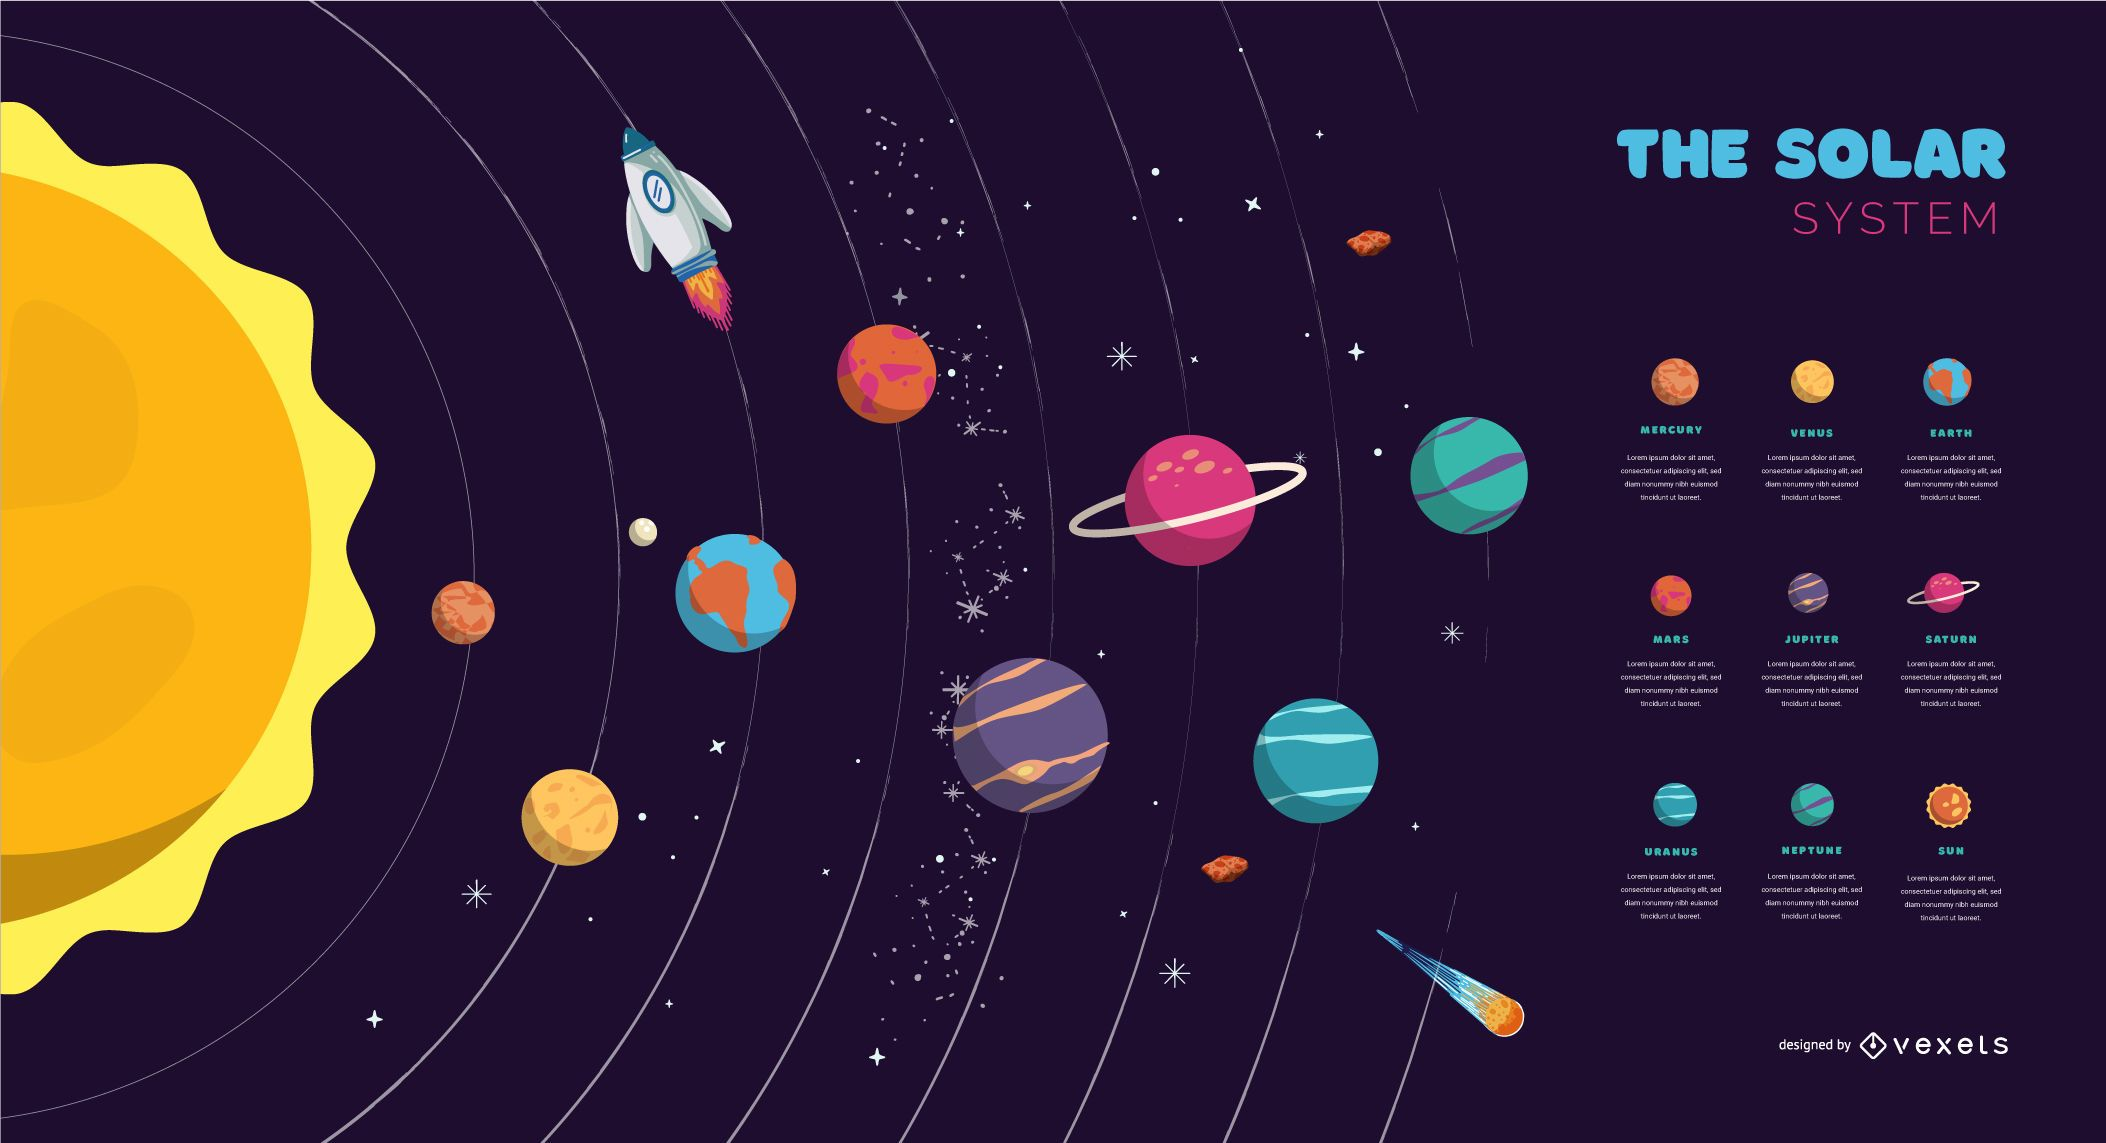 The Solar System Cover Design